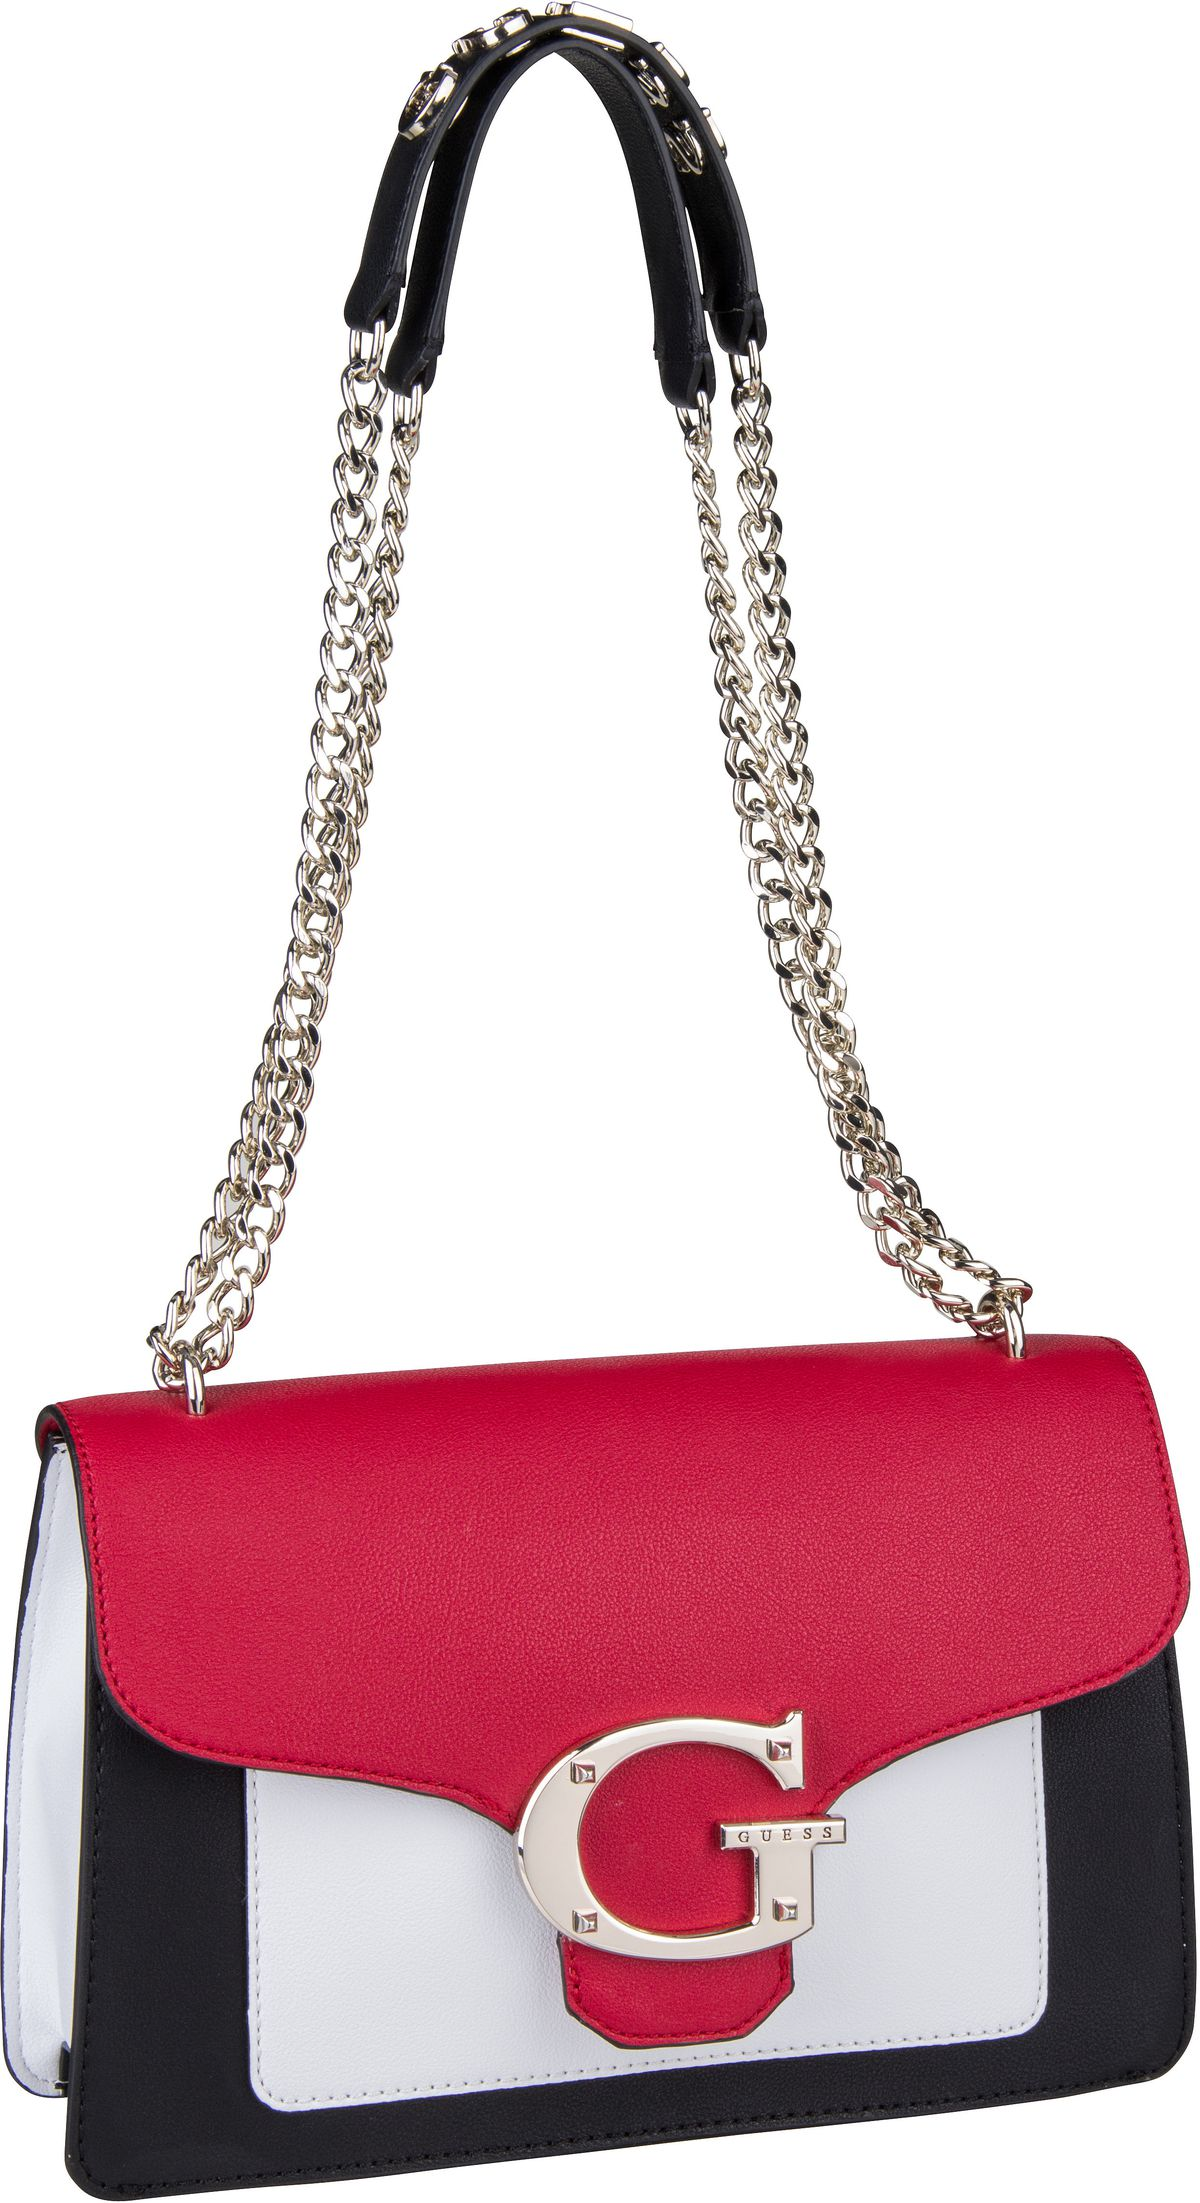 Handtasche Camila Convertible XBody Flap Red Multi